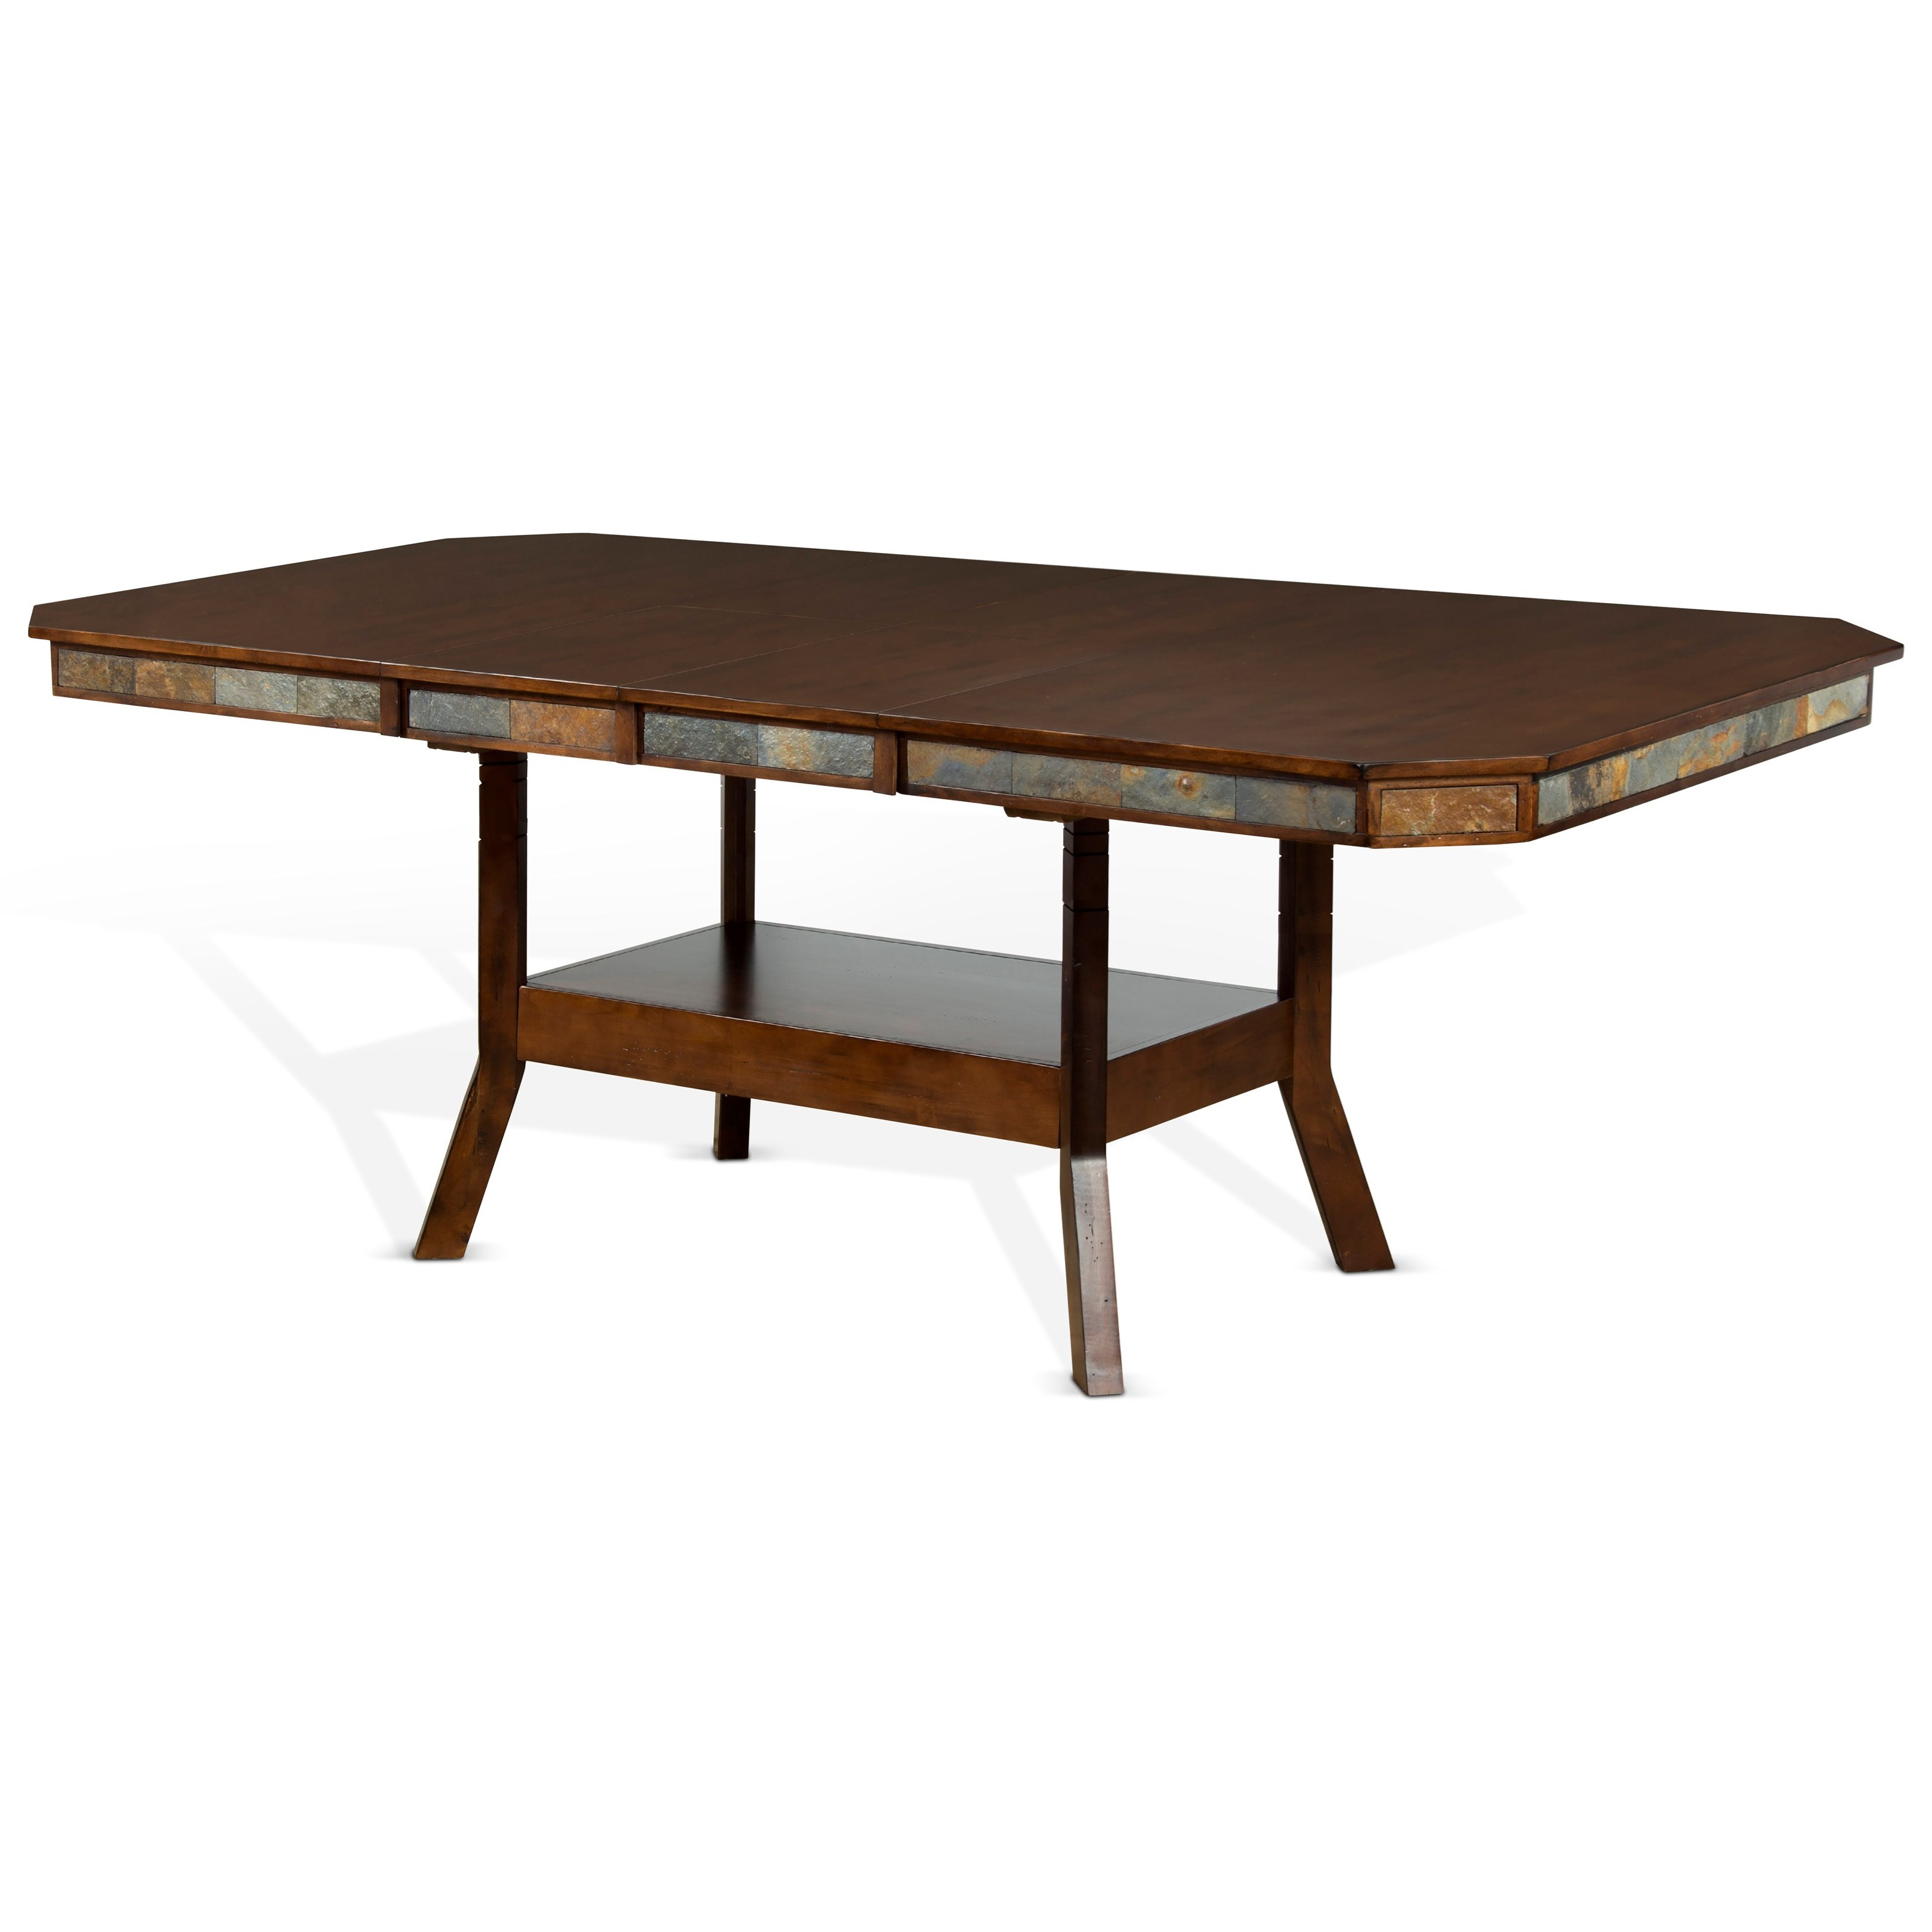 Sunny Designs Santa Fe 2 Adjustable Height Dining Table With 2 Butterfly Leaves Wayside Furniture Pub Tables